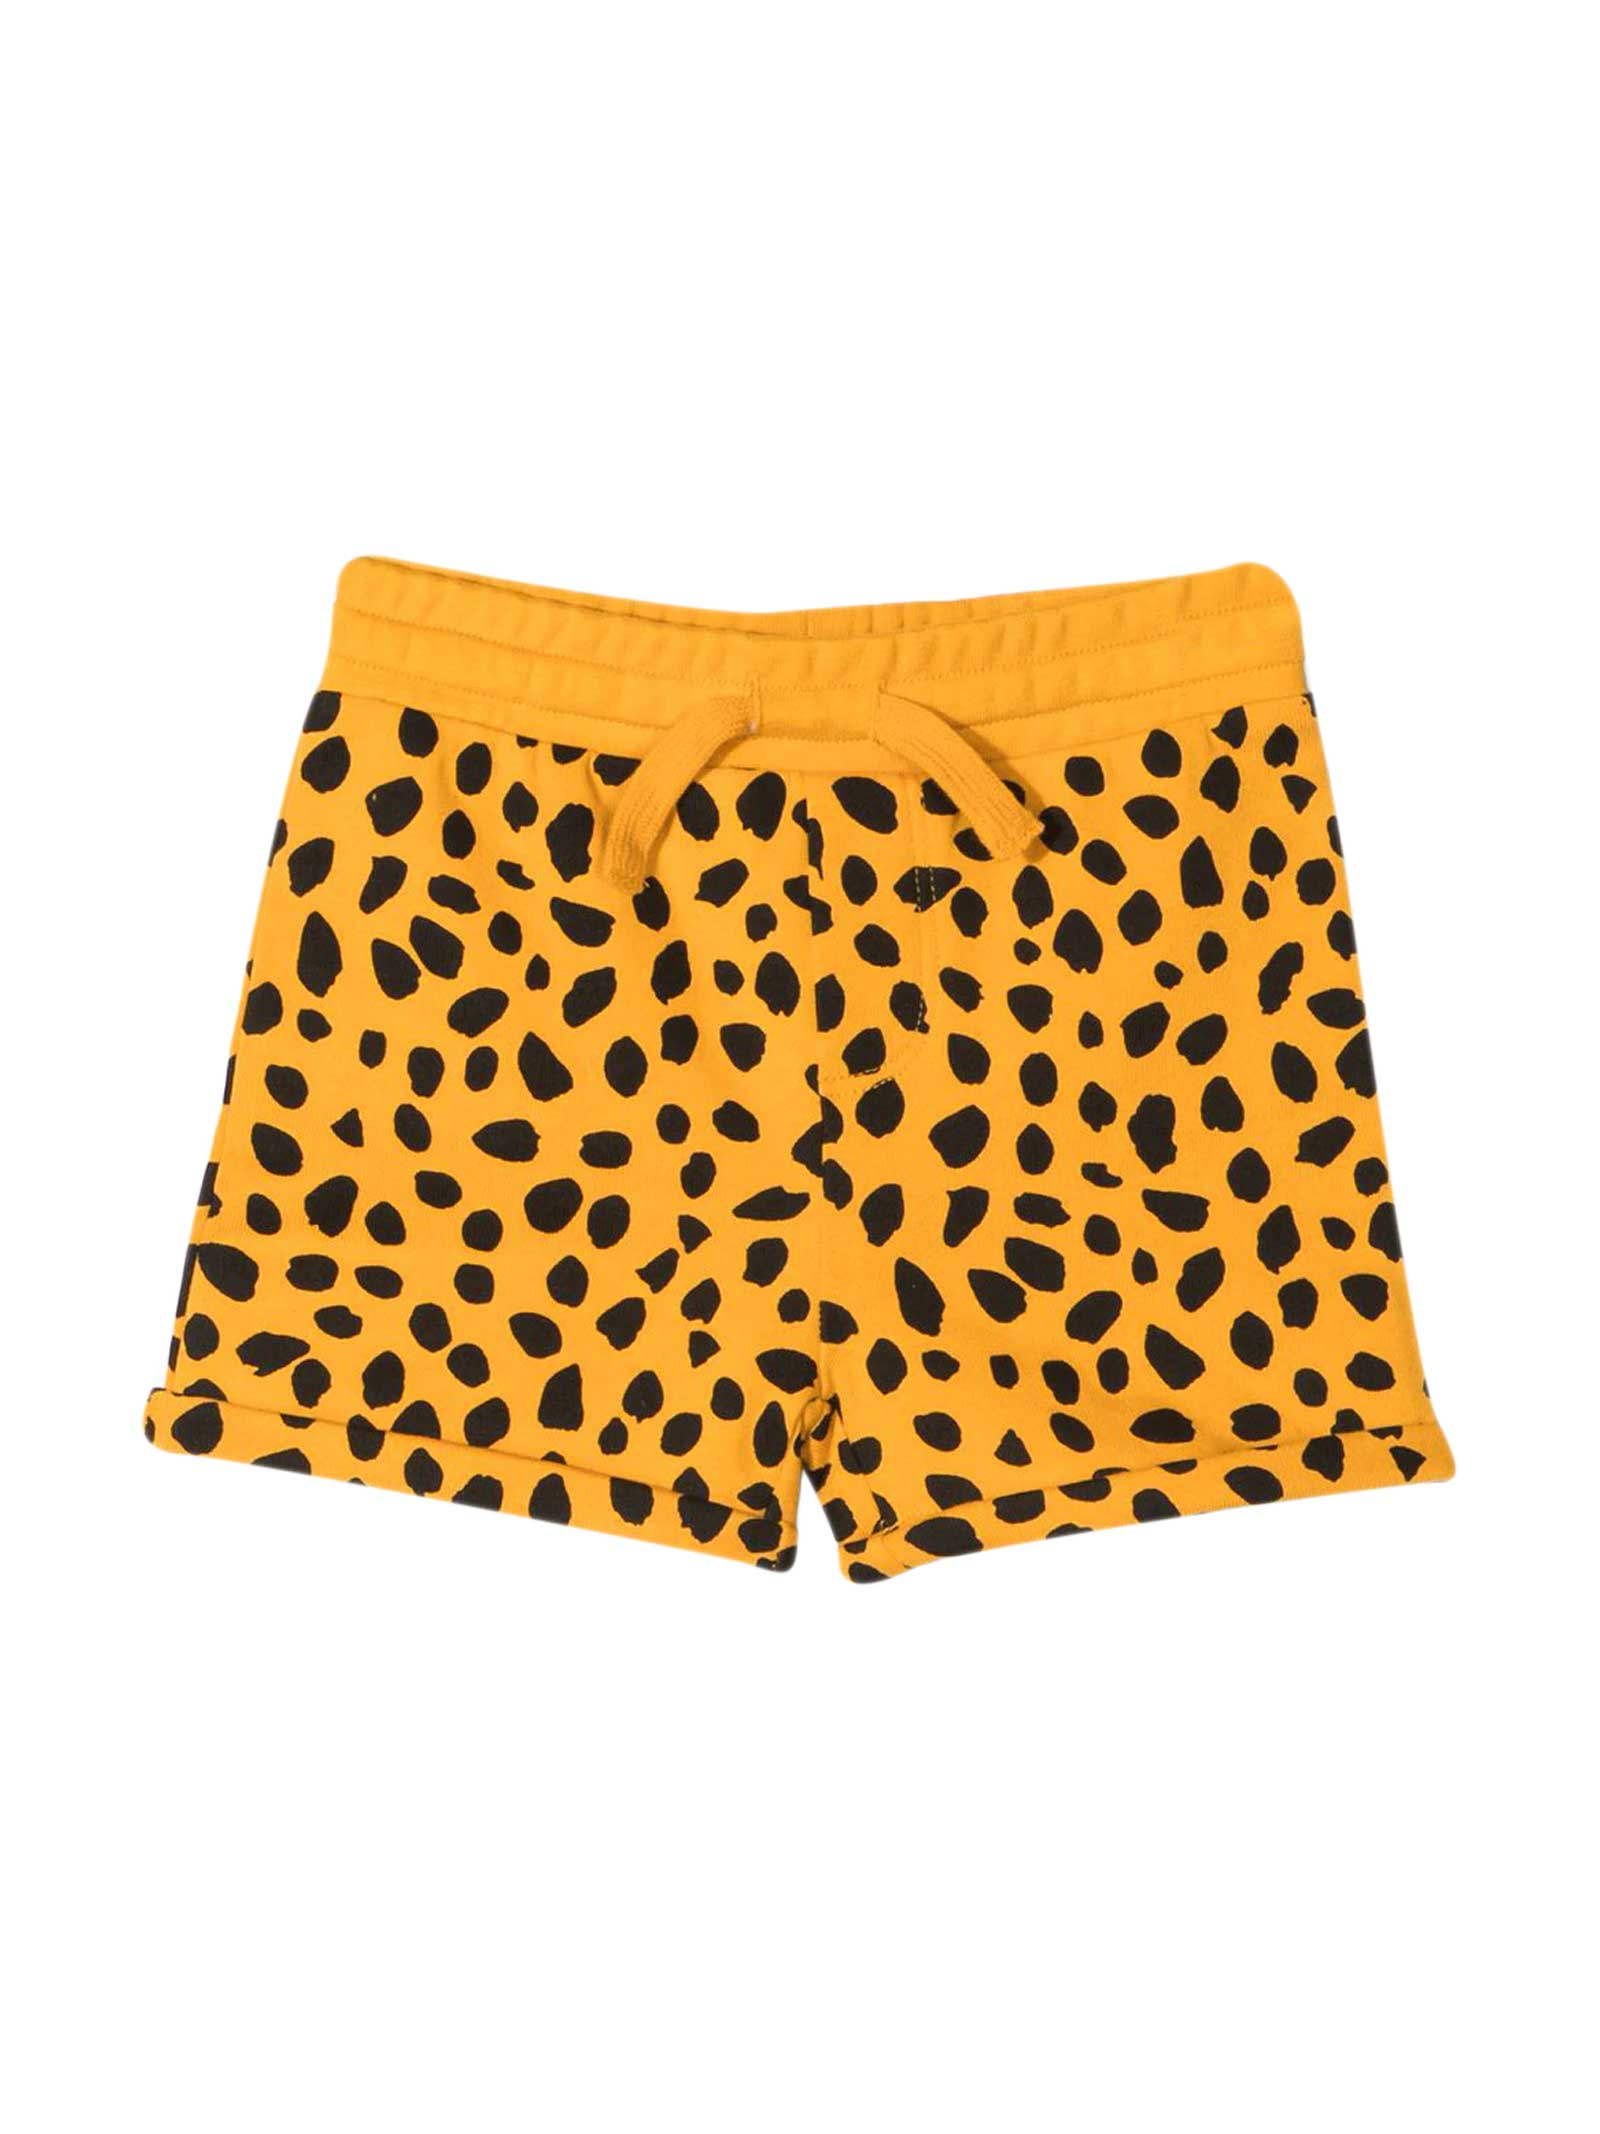 Stella Mccartney Shorts YELLOW SHORTS